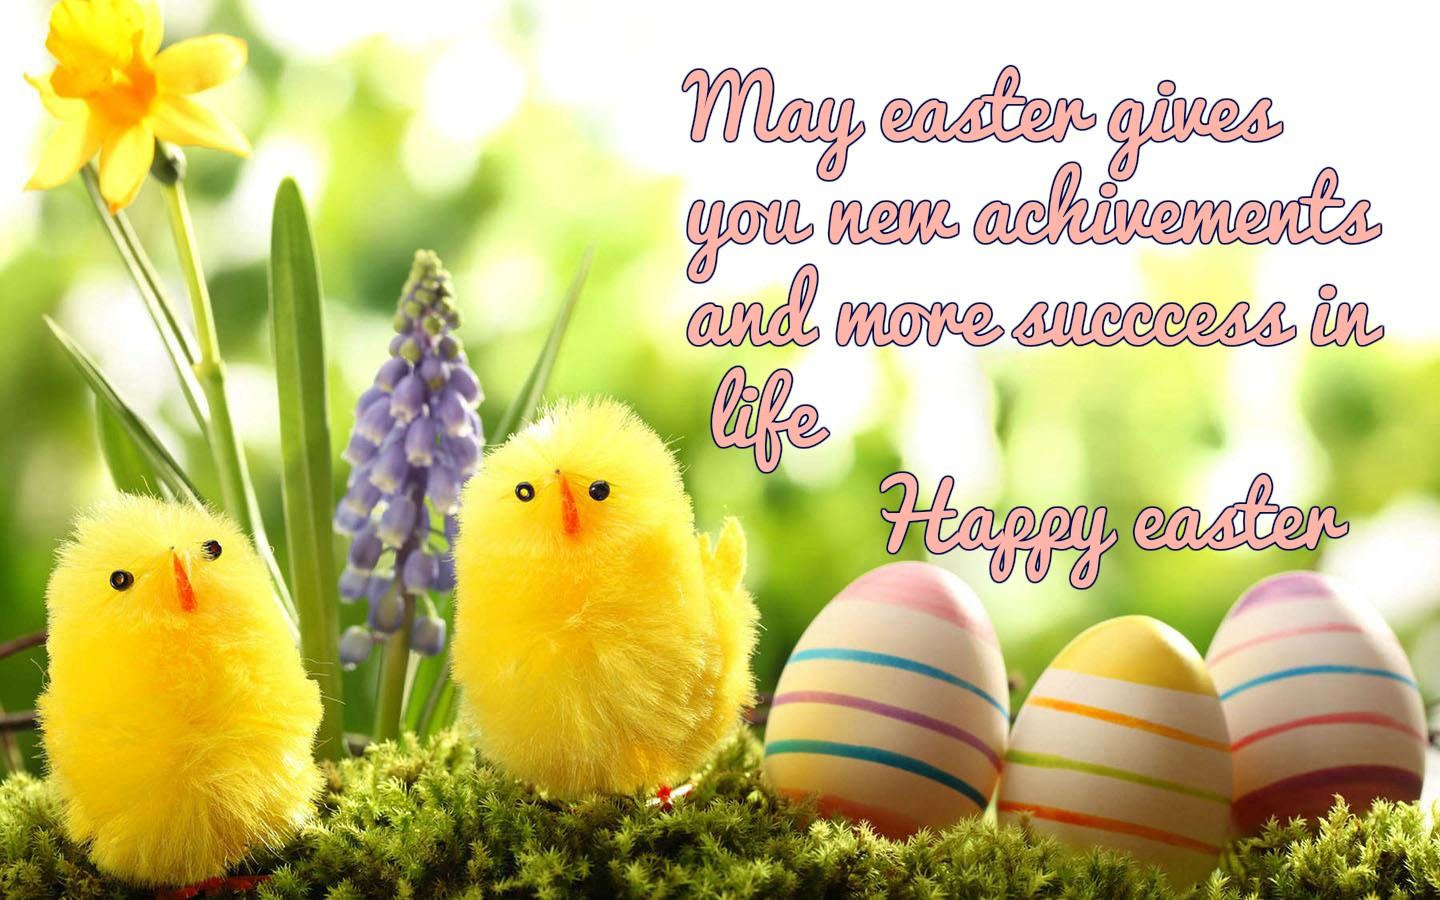 Happy easter wishes messages sms quotes slogans greetings 2018 happy easter greetings kristyandbryce Images